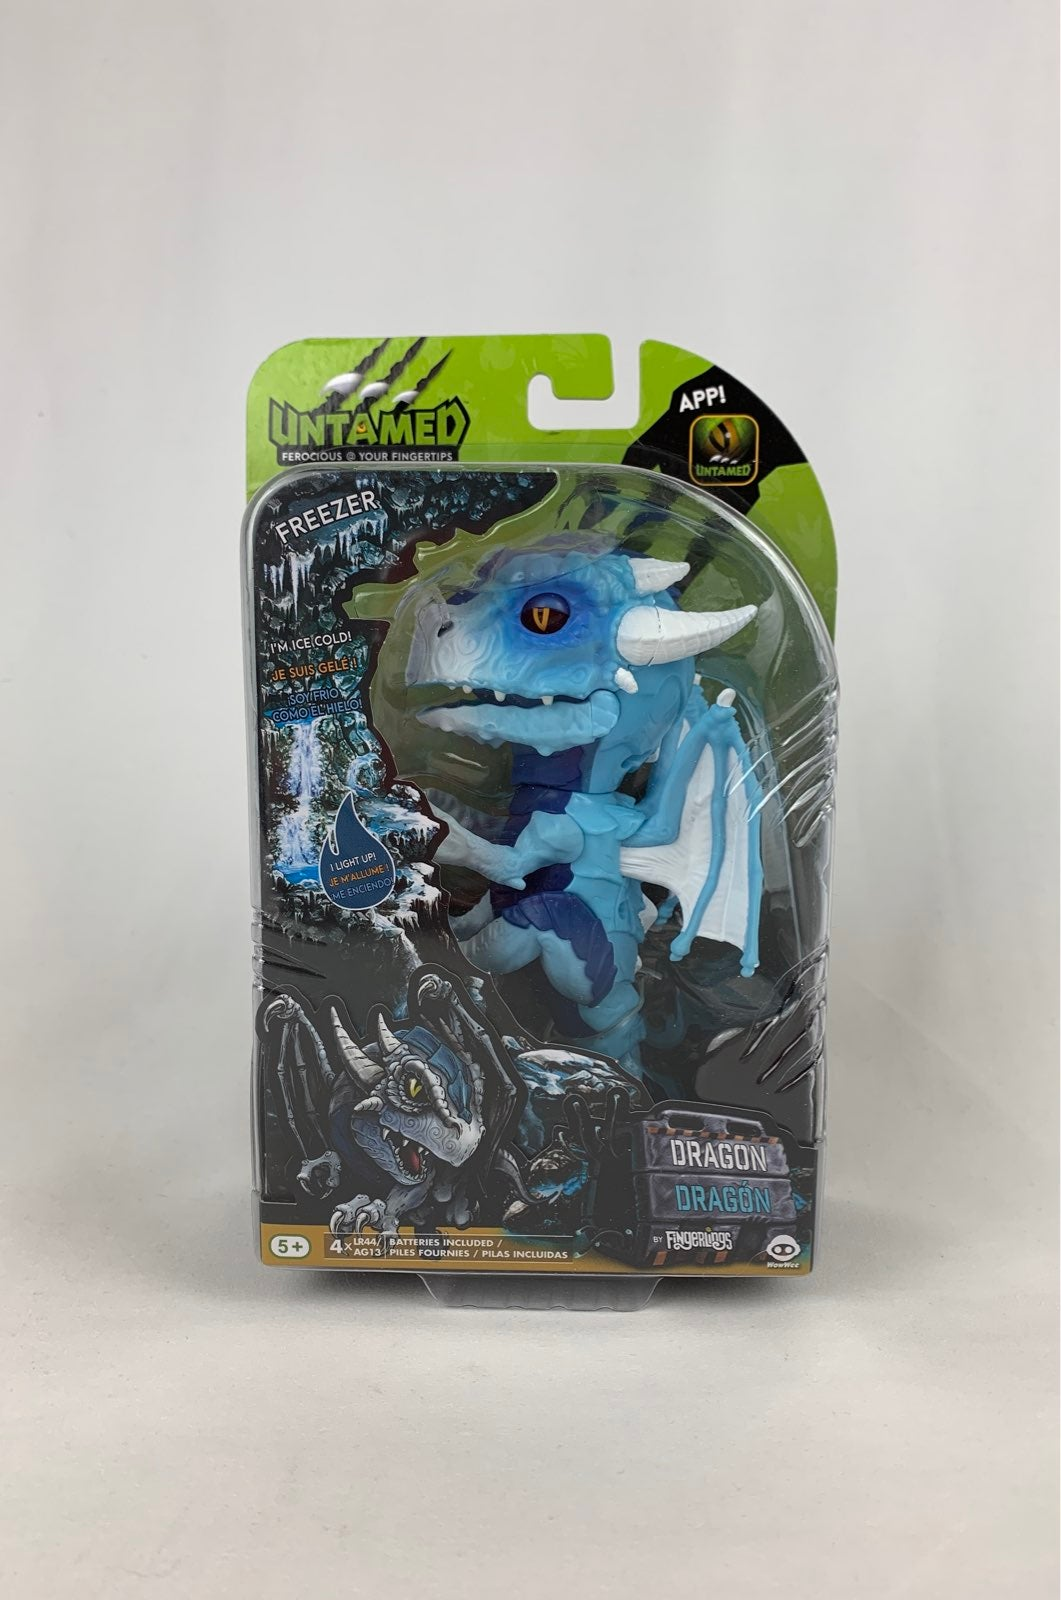 WowWee Untamed Dragon - Freezer